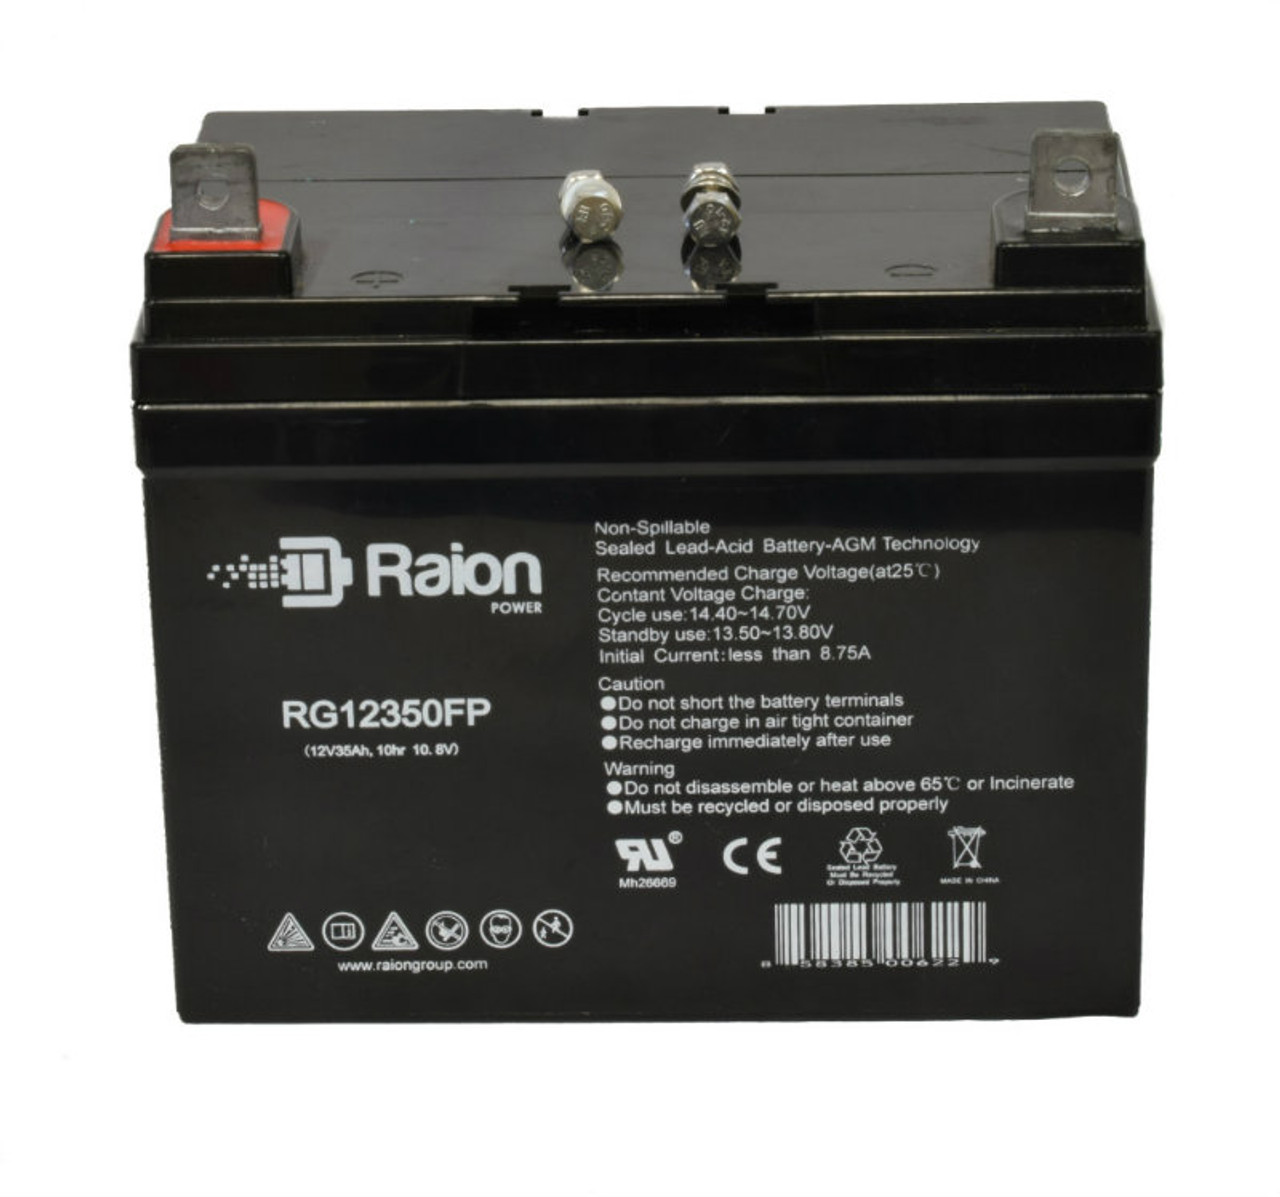 RG12350FP Sealed Lead Acid Battery Pack For Fortress Scooters 2000 Mini U1 Mobility Scooter